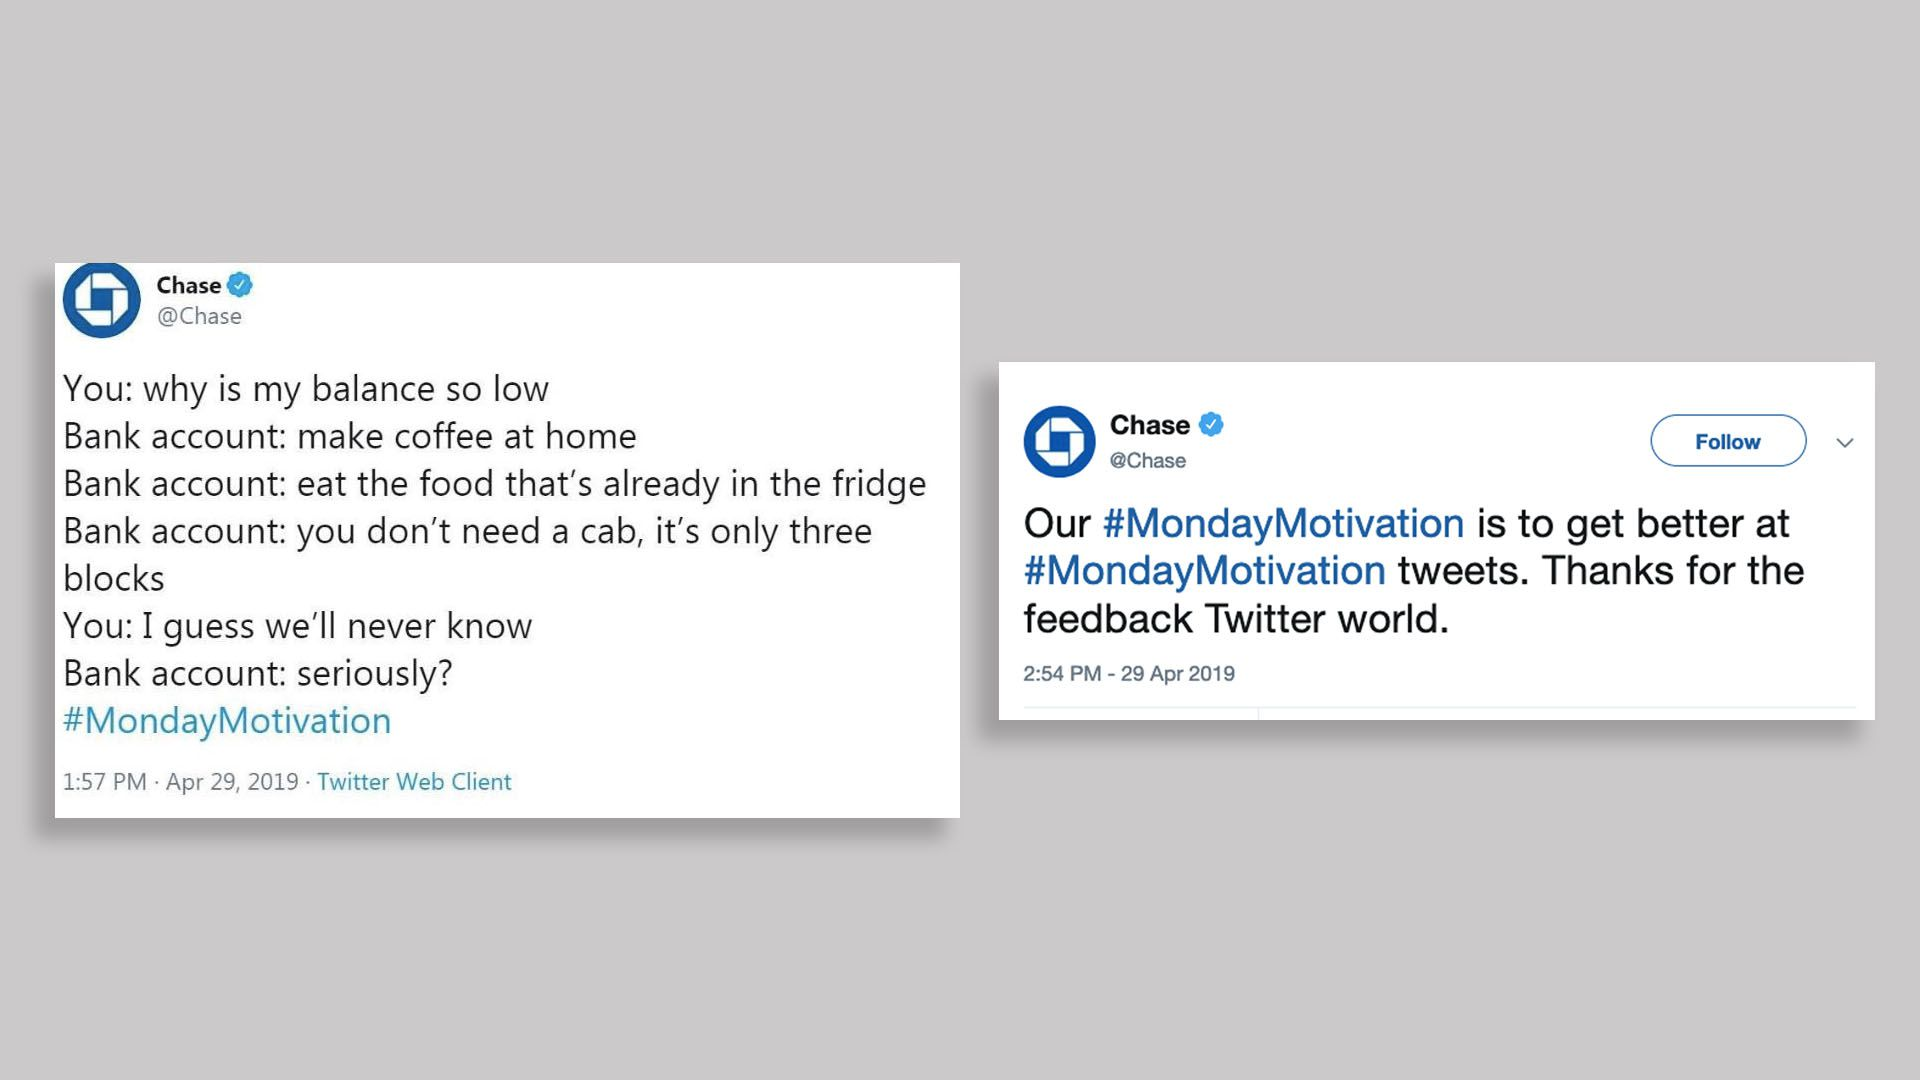 Two tweets from Chase with the hashtag #MondayMotivation